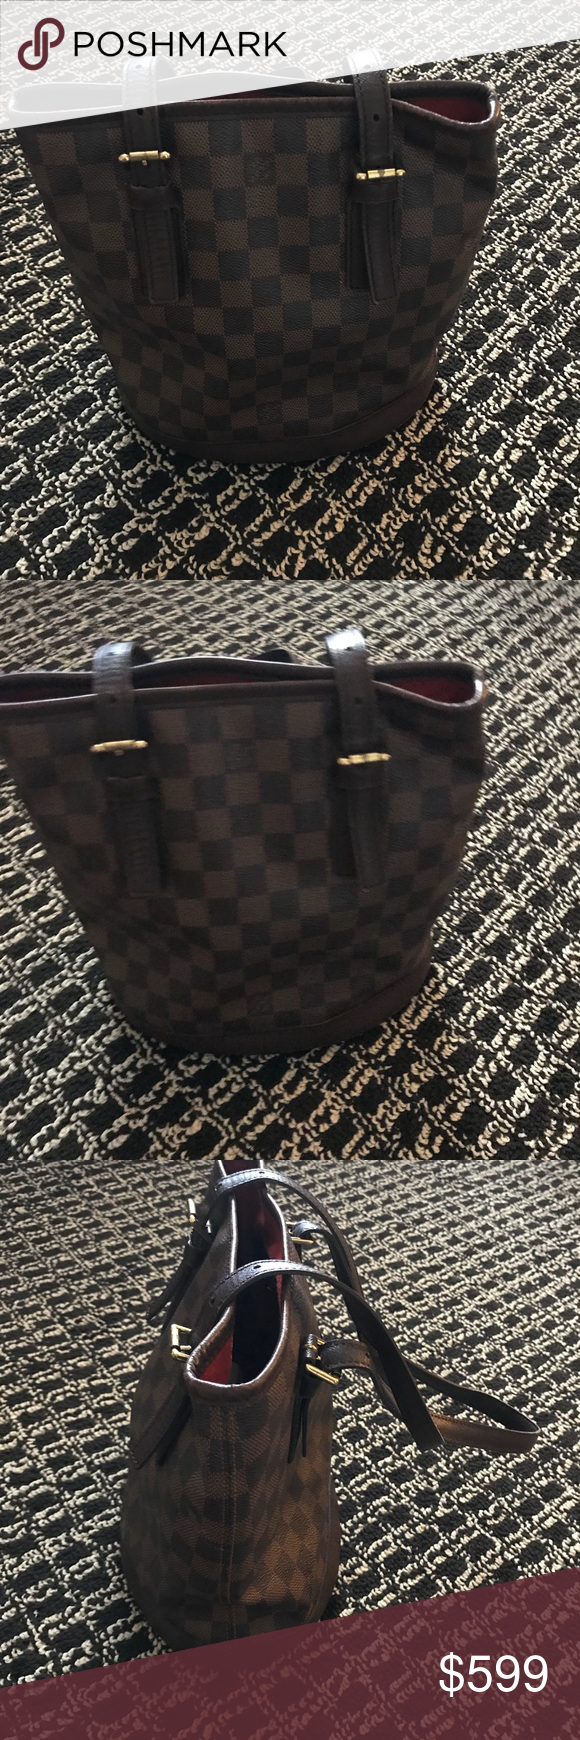 fb54a92351 Louis Vuitton Damier Ebene PM Bucket Bag 💯 Authentic Louis Vuitton  Monogram Alma Bag. Too small for me to use. Inside lining is a little dirty  from use, ...